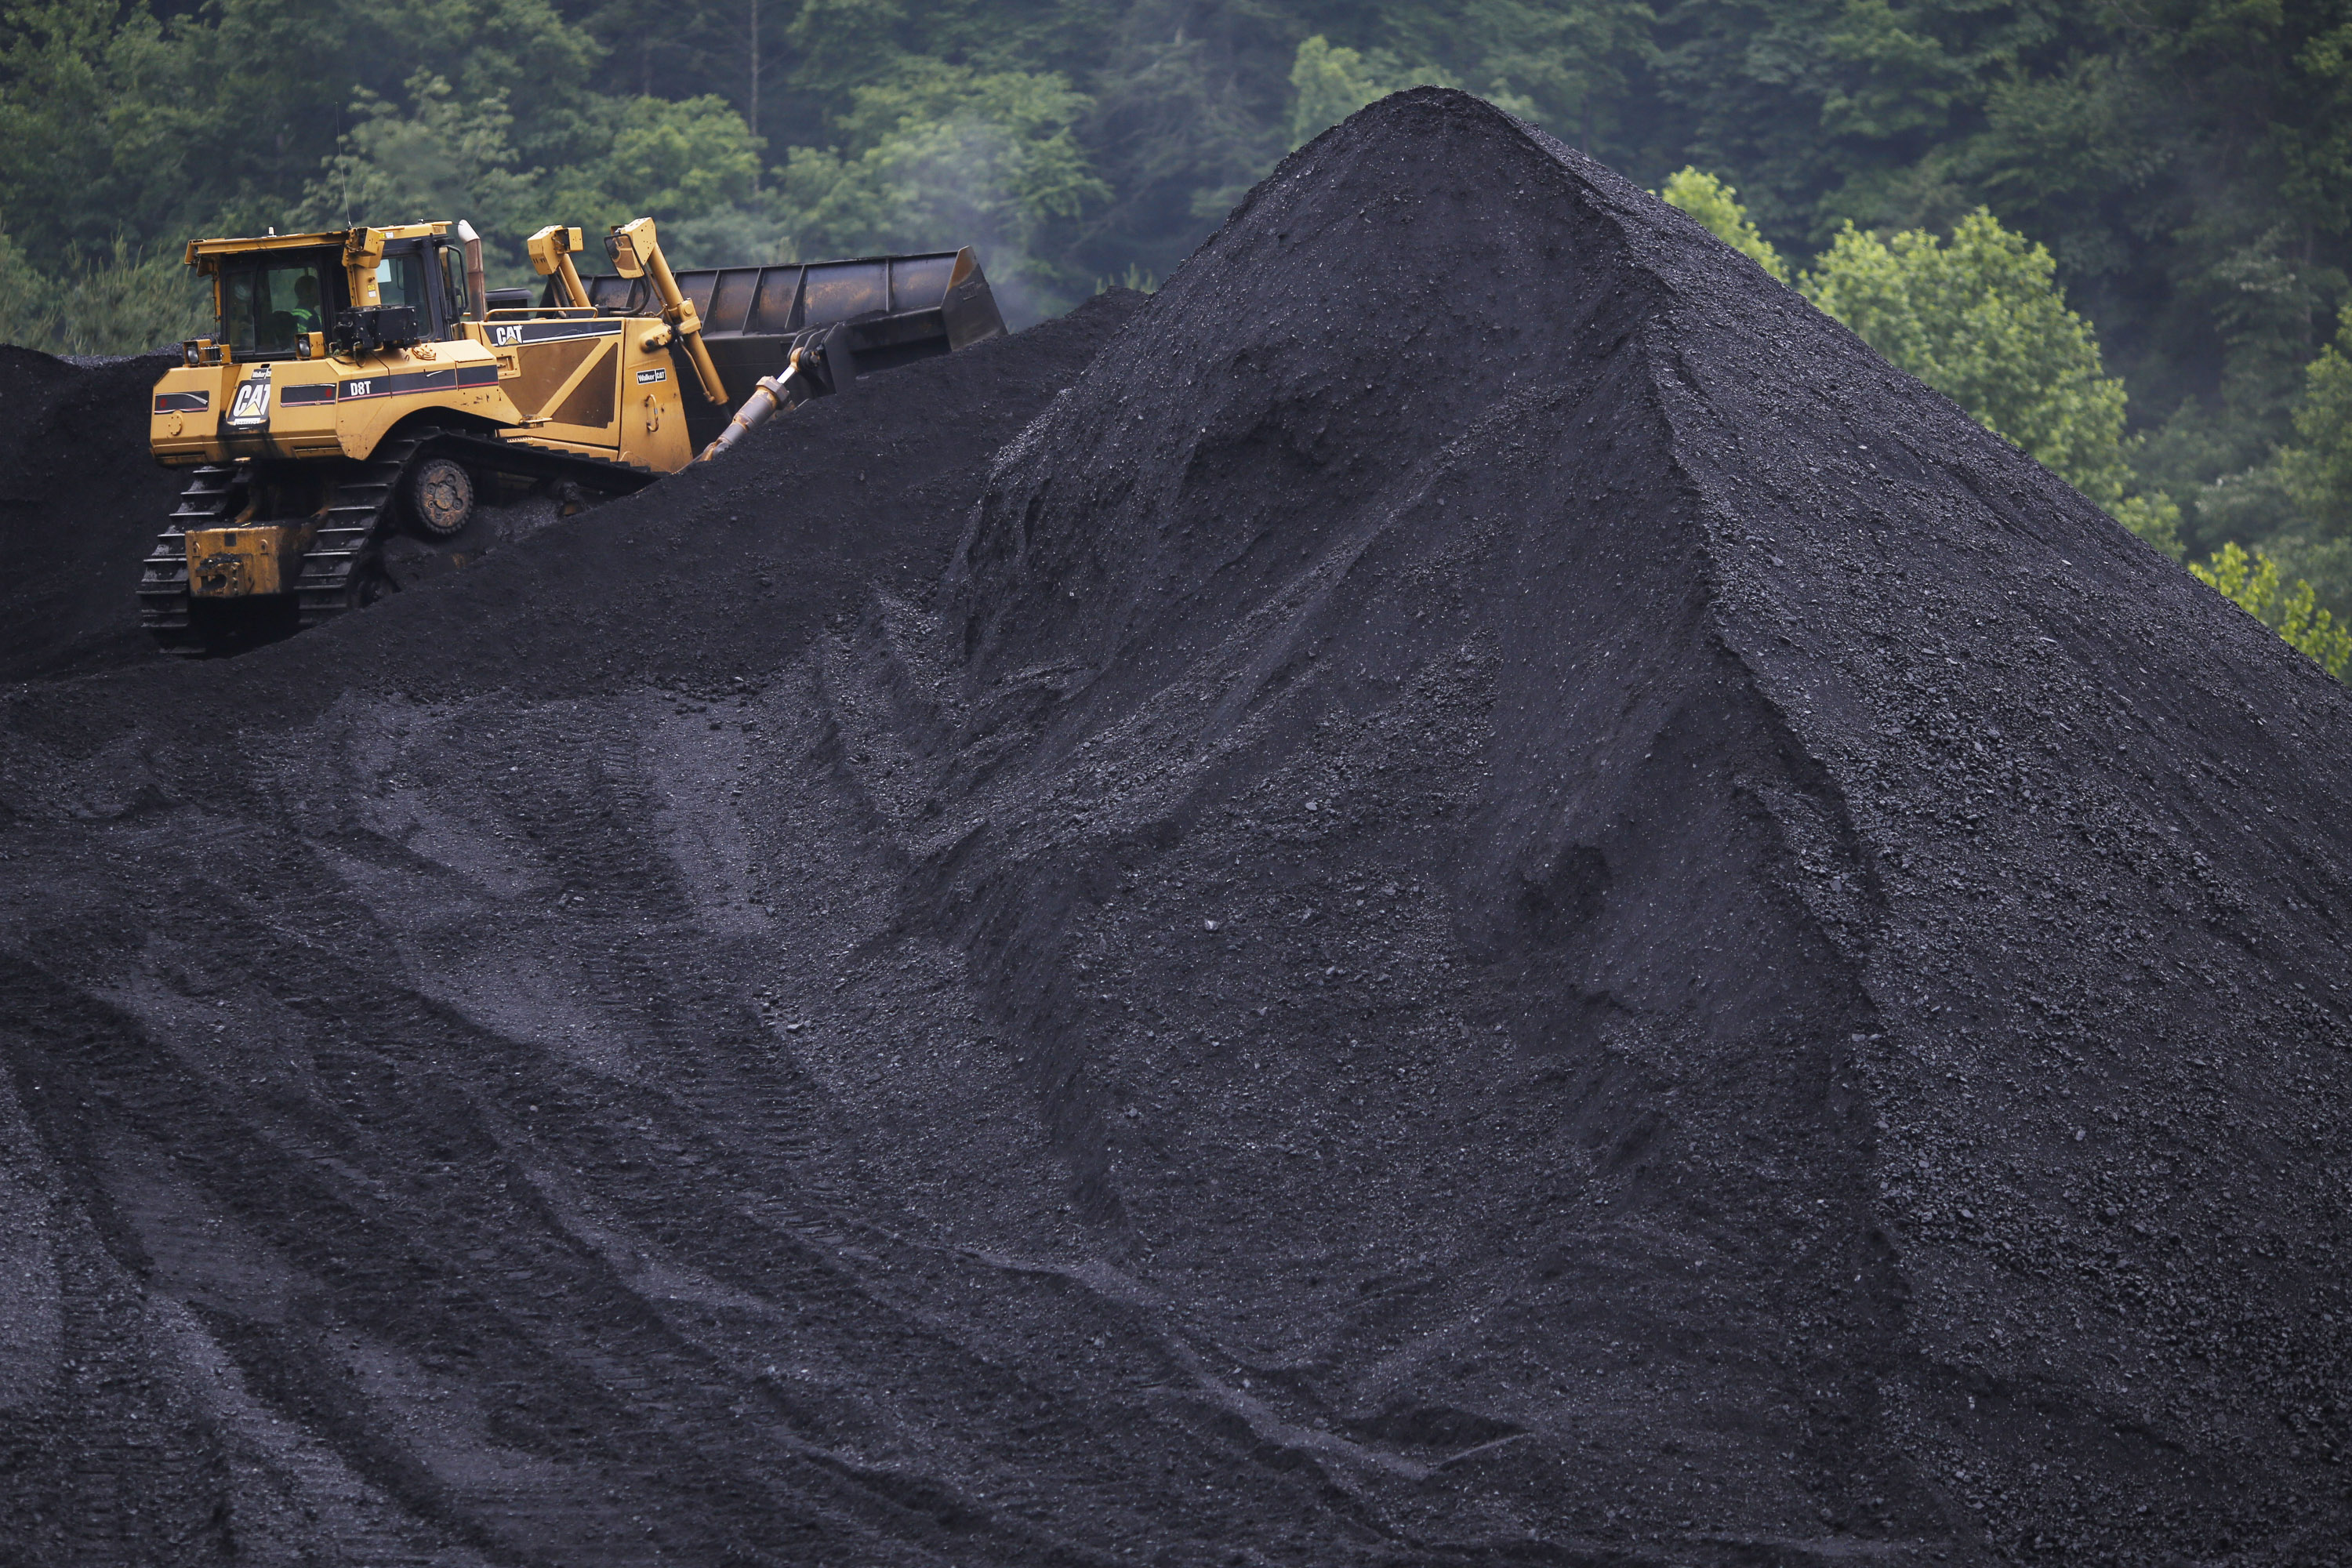 Why Trump just killed a rule restricting coal companies from dumping waste in streams